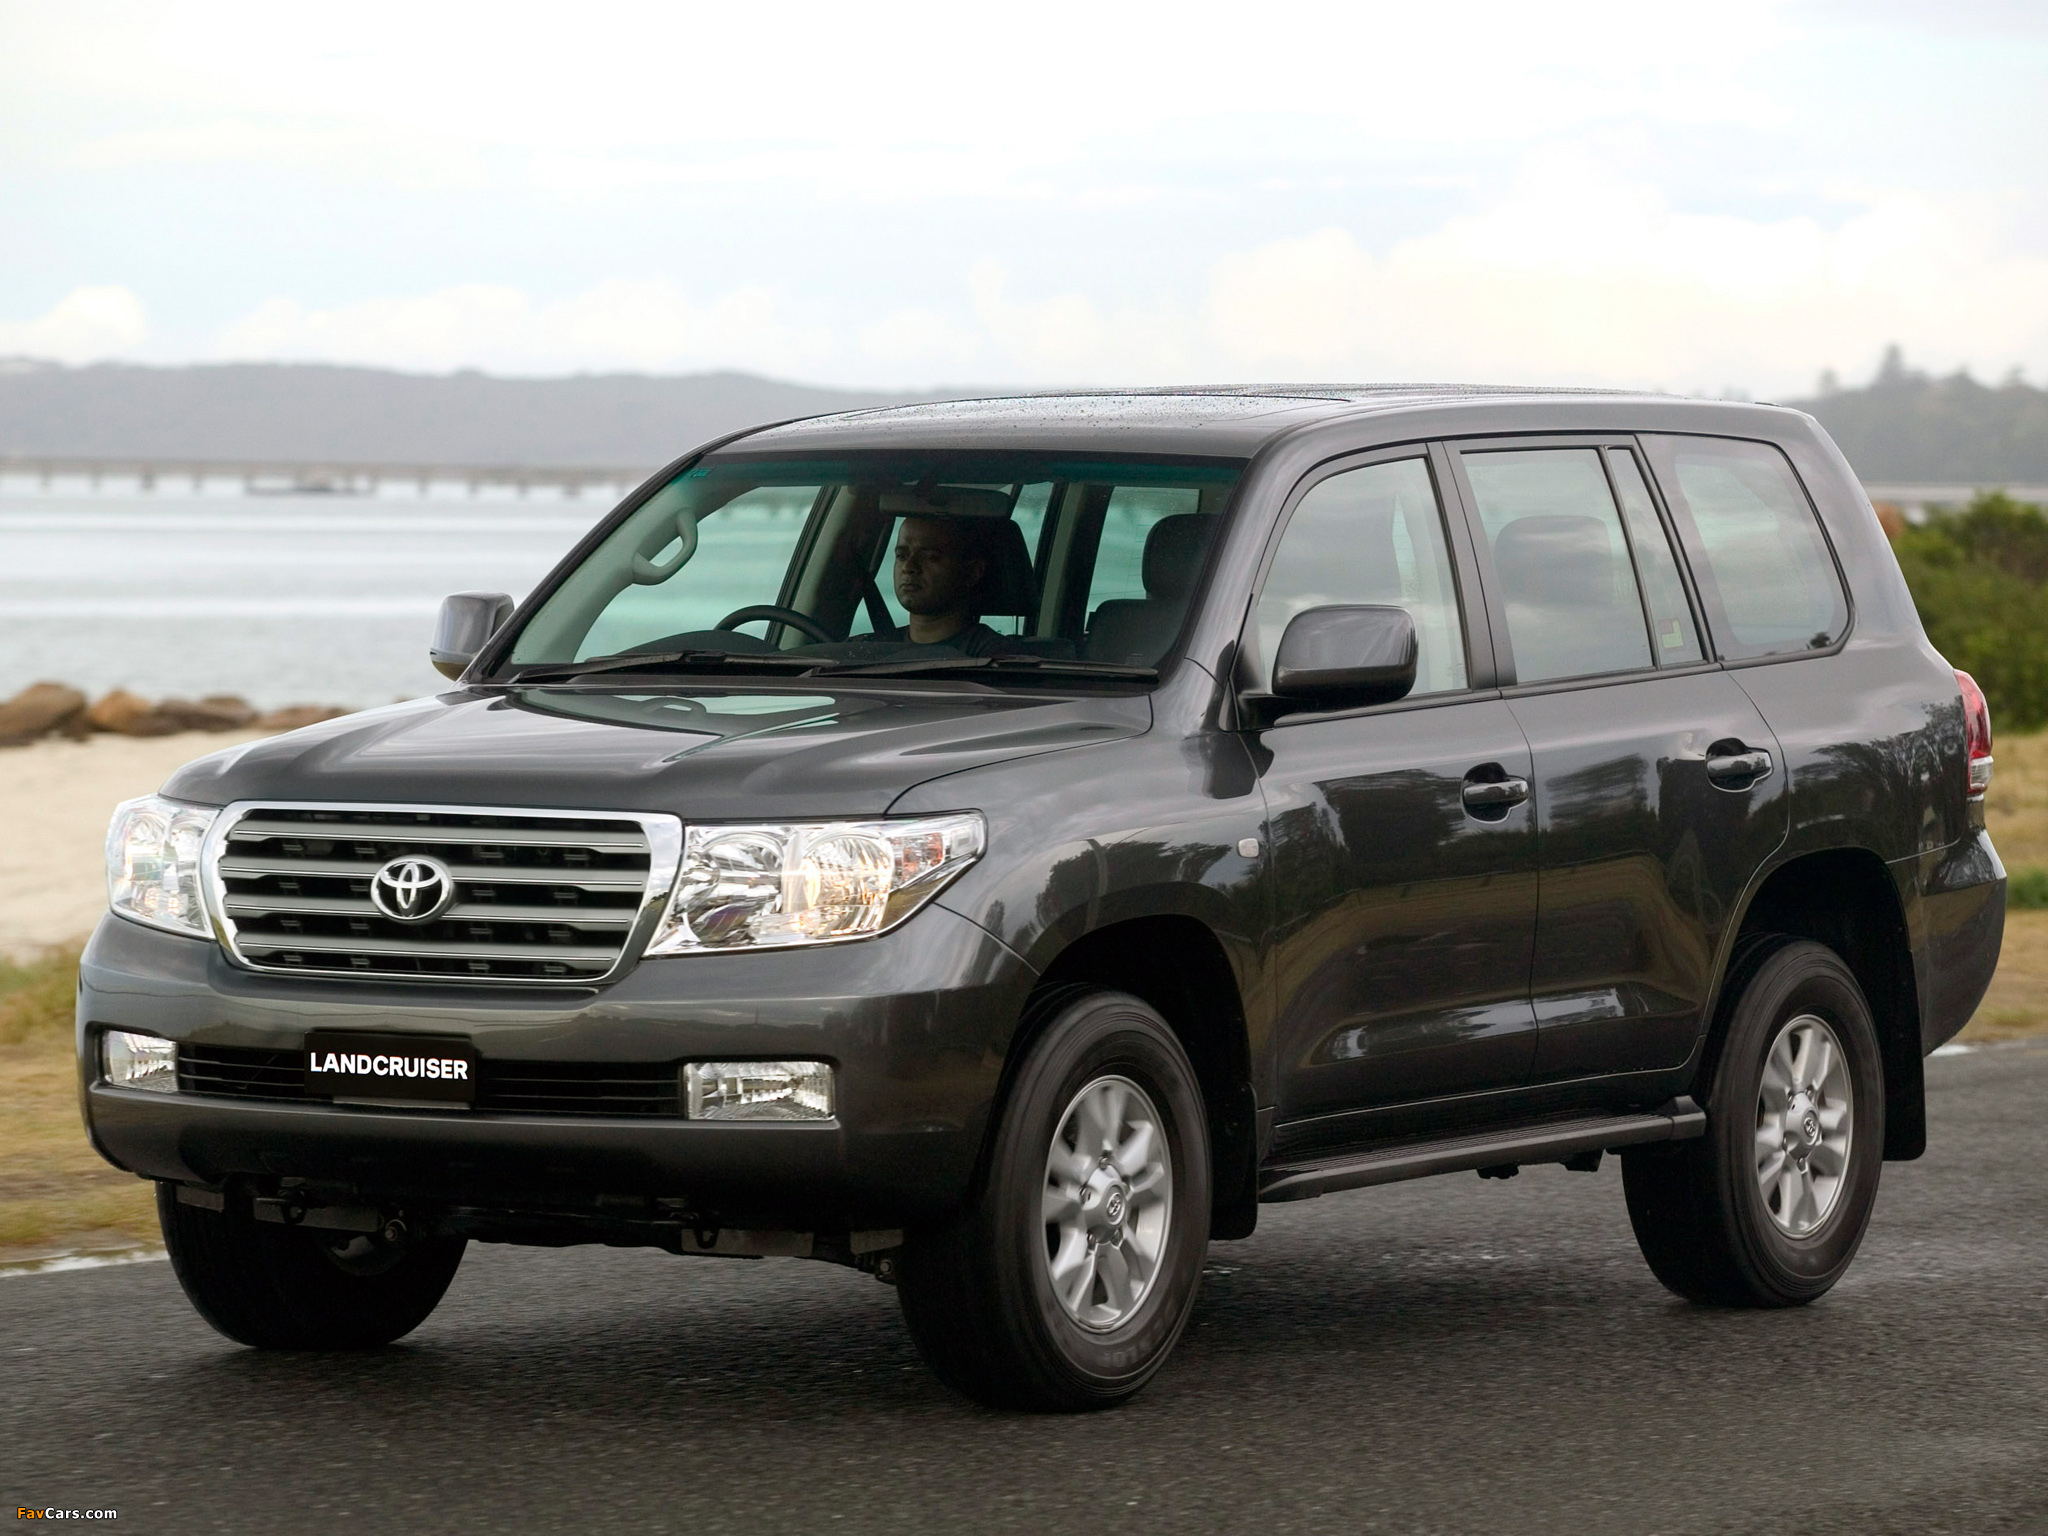 pictures of toyota land cruiser 200 2007 auto. Black Bedroom Furniture Sets. Home Design Ideas